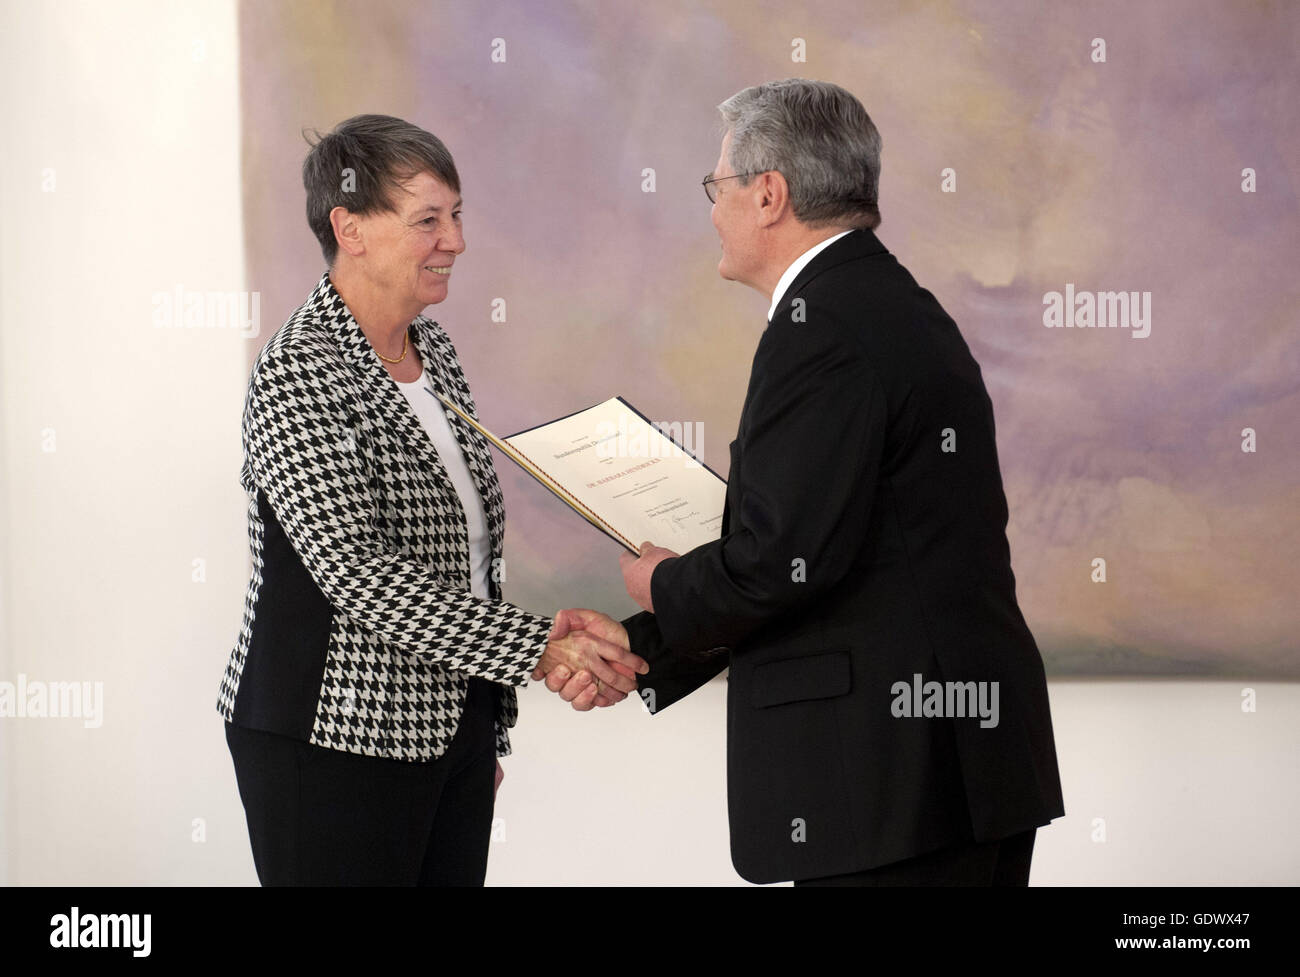 Hendricks and Gauck - Stock Image